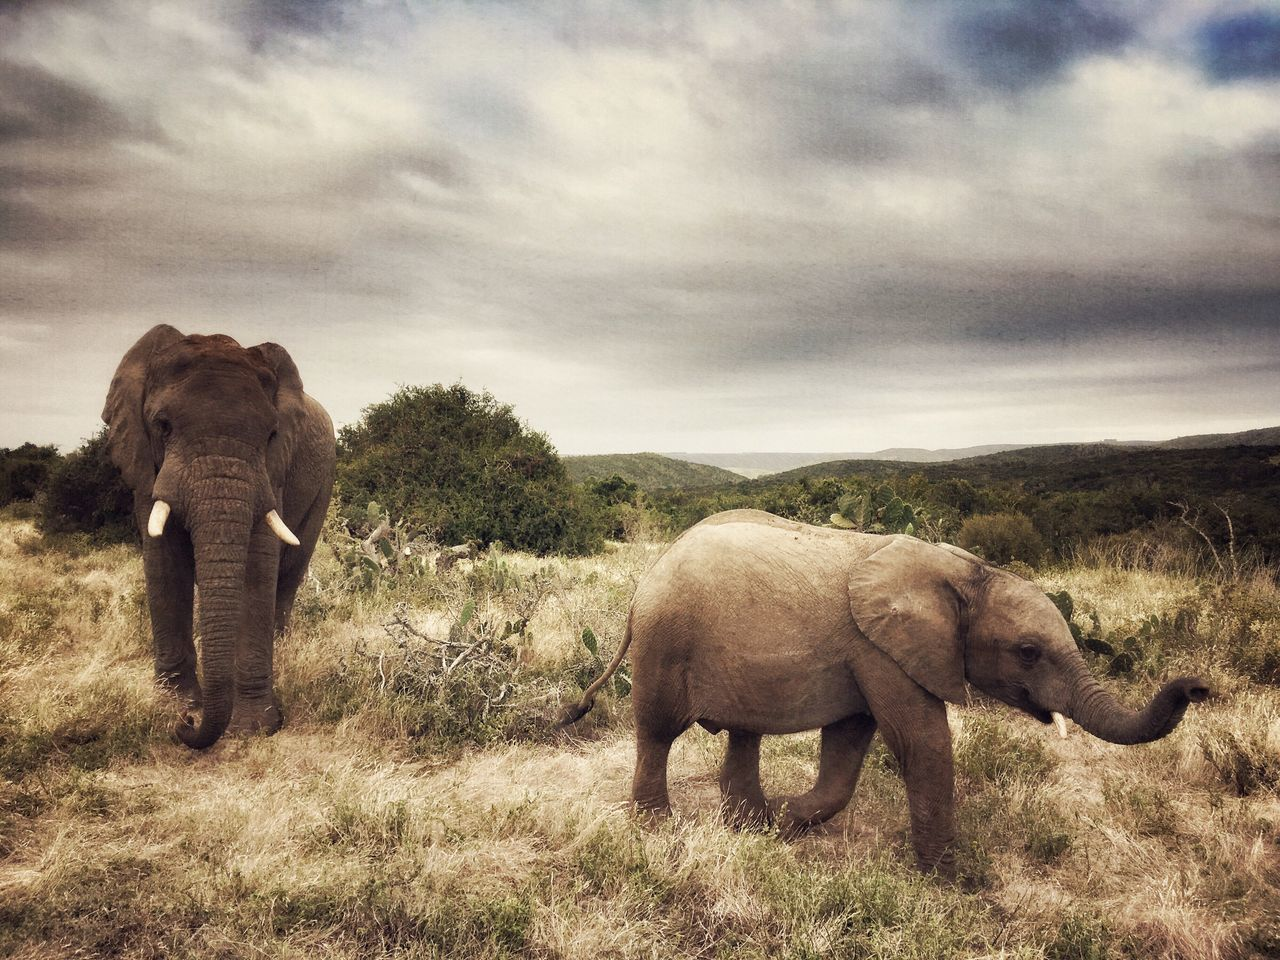 African Elephants, Mother & Calf Elephant Animals In The Wild Animal Themes Sky Animal Wildlife Grass Cloud - Sky Iphoneonly IPhoneography Calf Tree Outdoors Day Nature Tusk African Elephant Mammal Baby Parent Mother Beauty In Nature